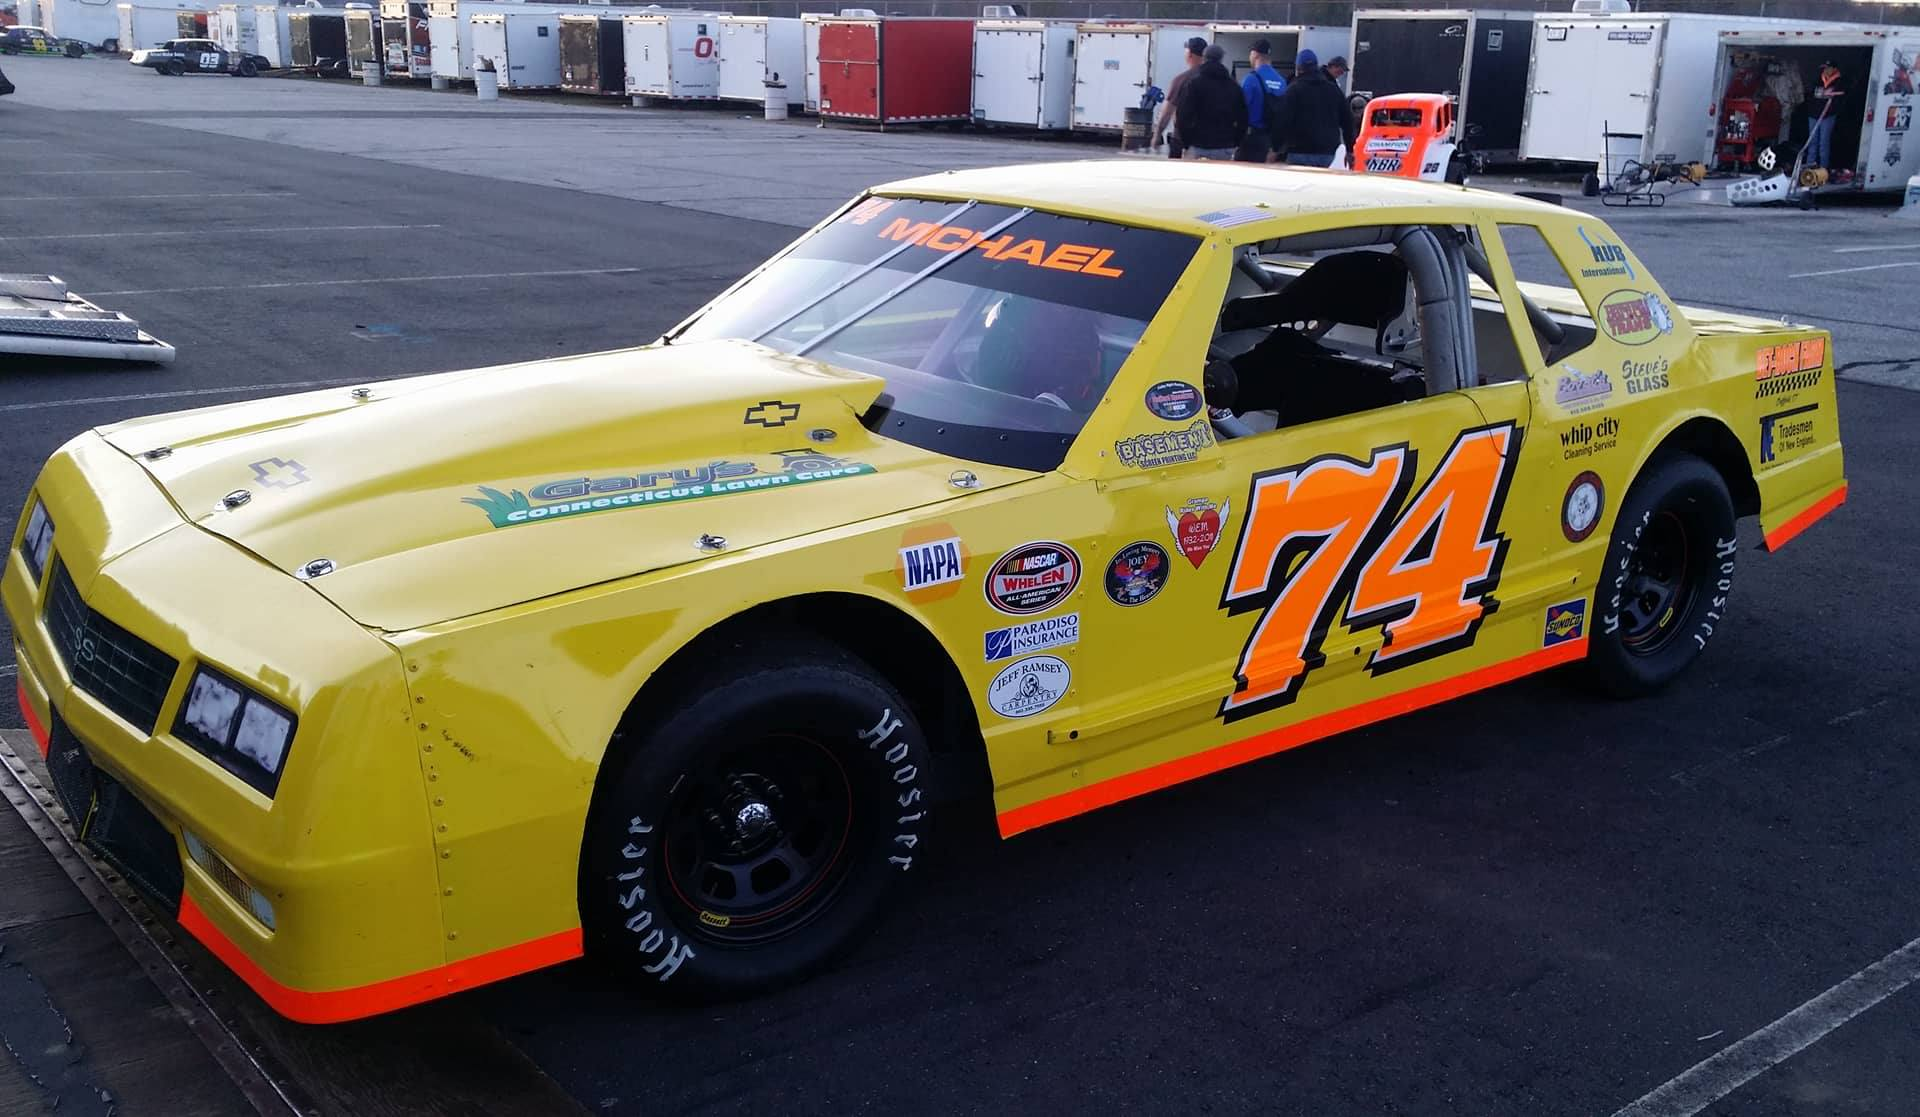 Complete Dare Stock Front Running Car For Sale   Stafford Motor ...